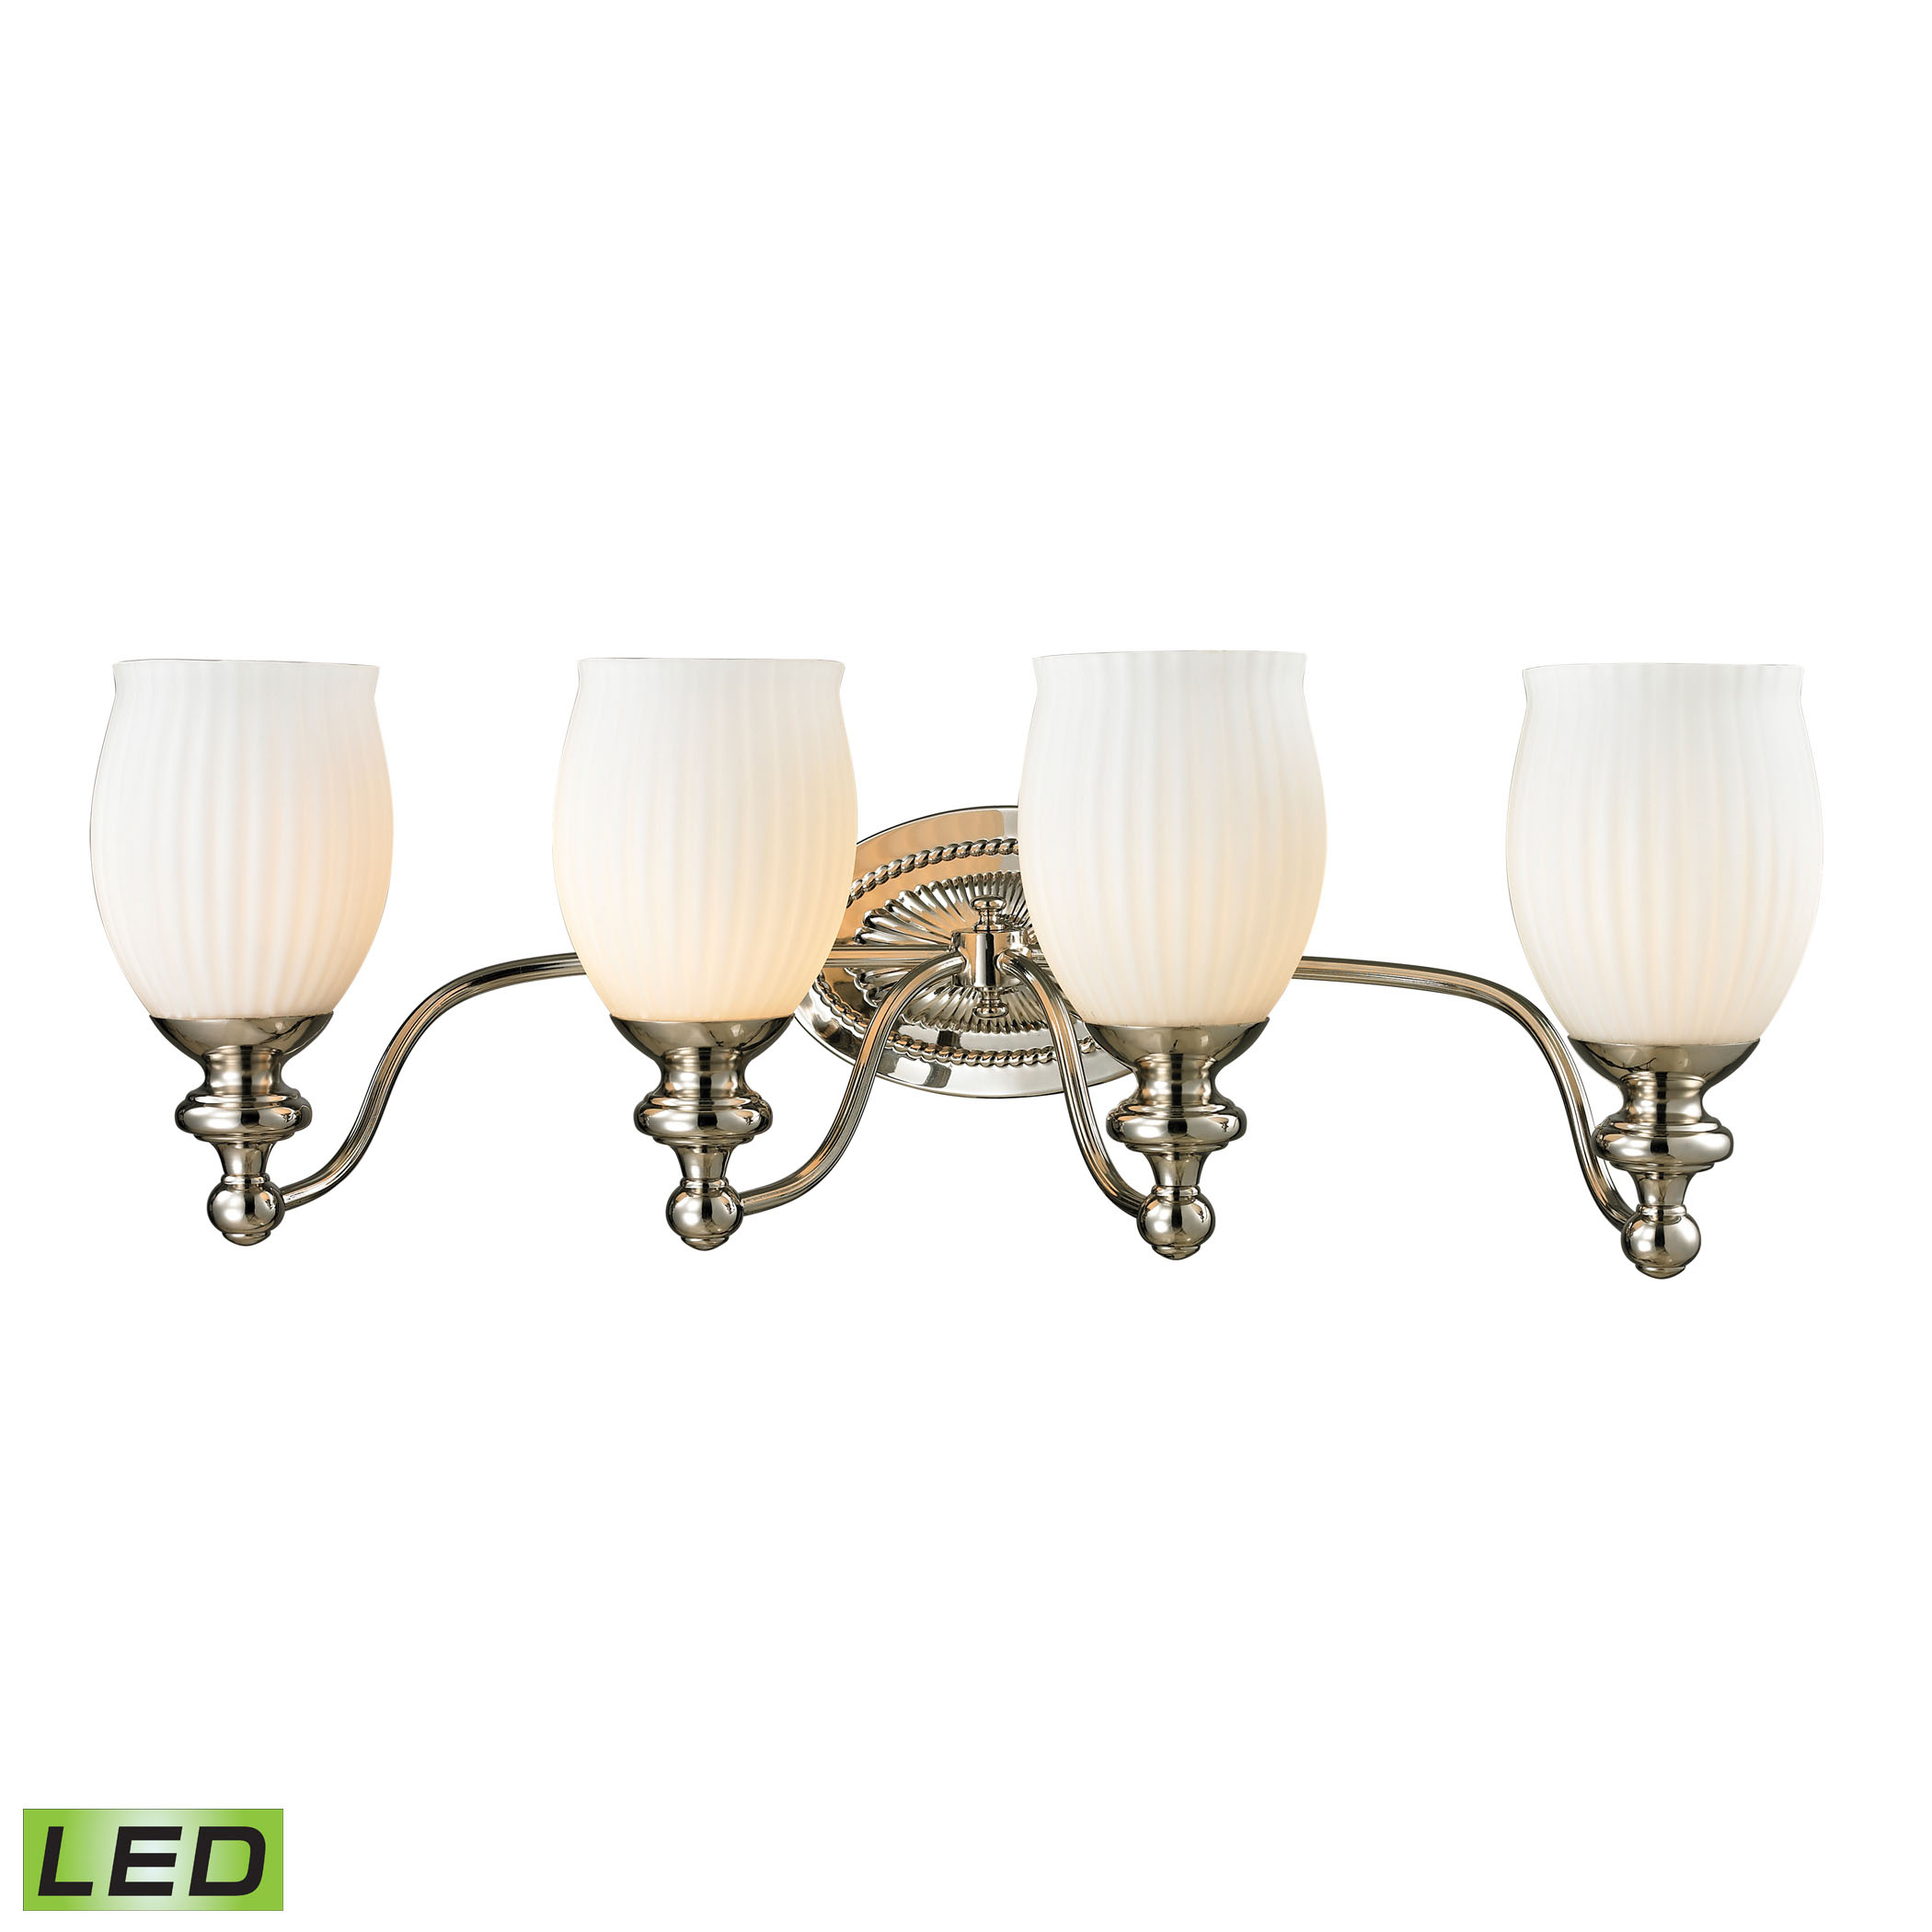 Park Ridge Collection 4 Light Bath in Polished Nickel - LED, 800 Lumens (3200 Lumens Total) with Ful